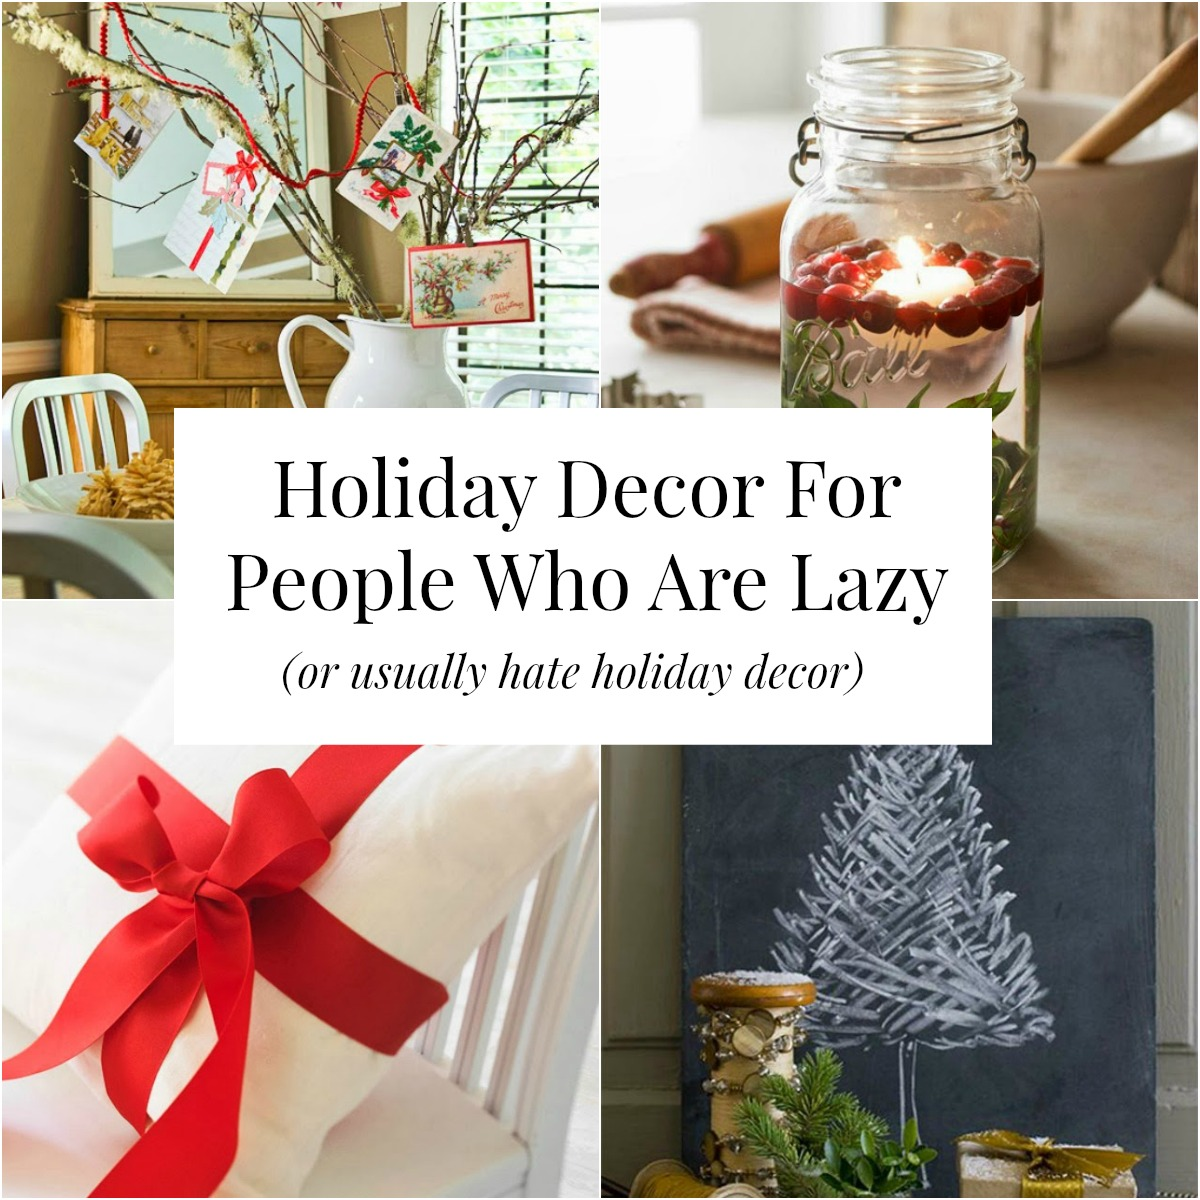 Holiday Decor Ideas For Lazy People